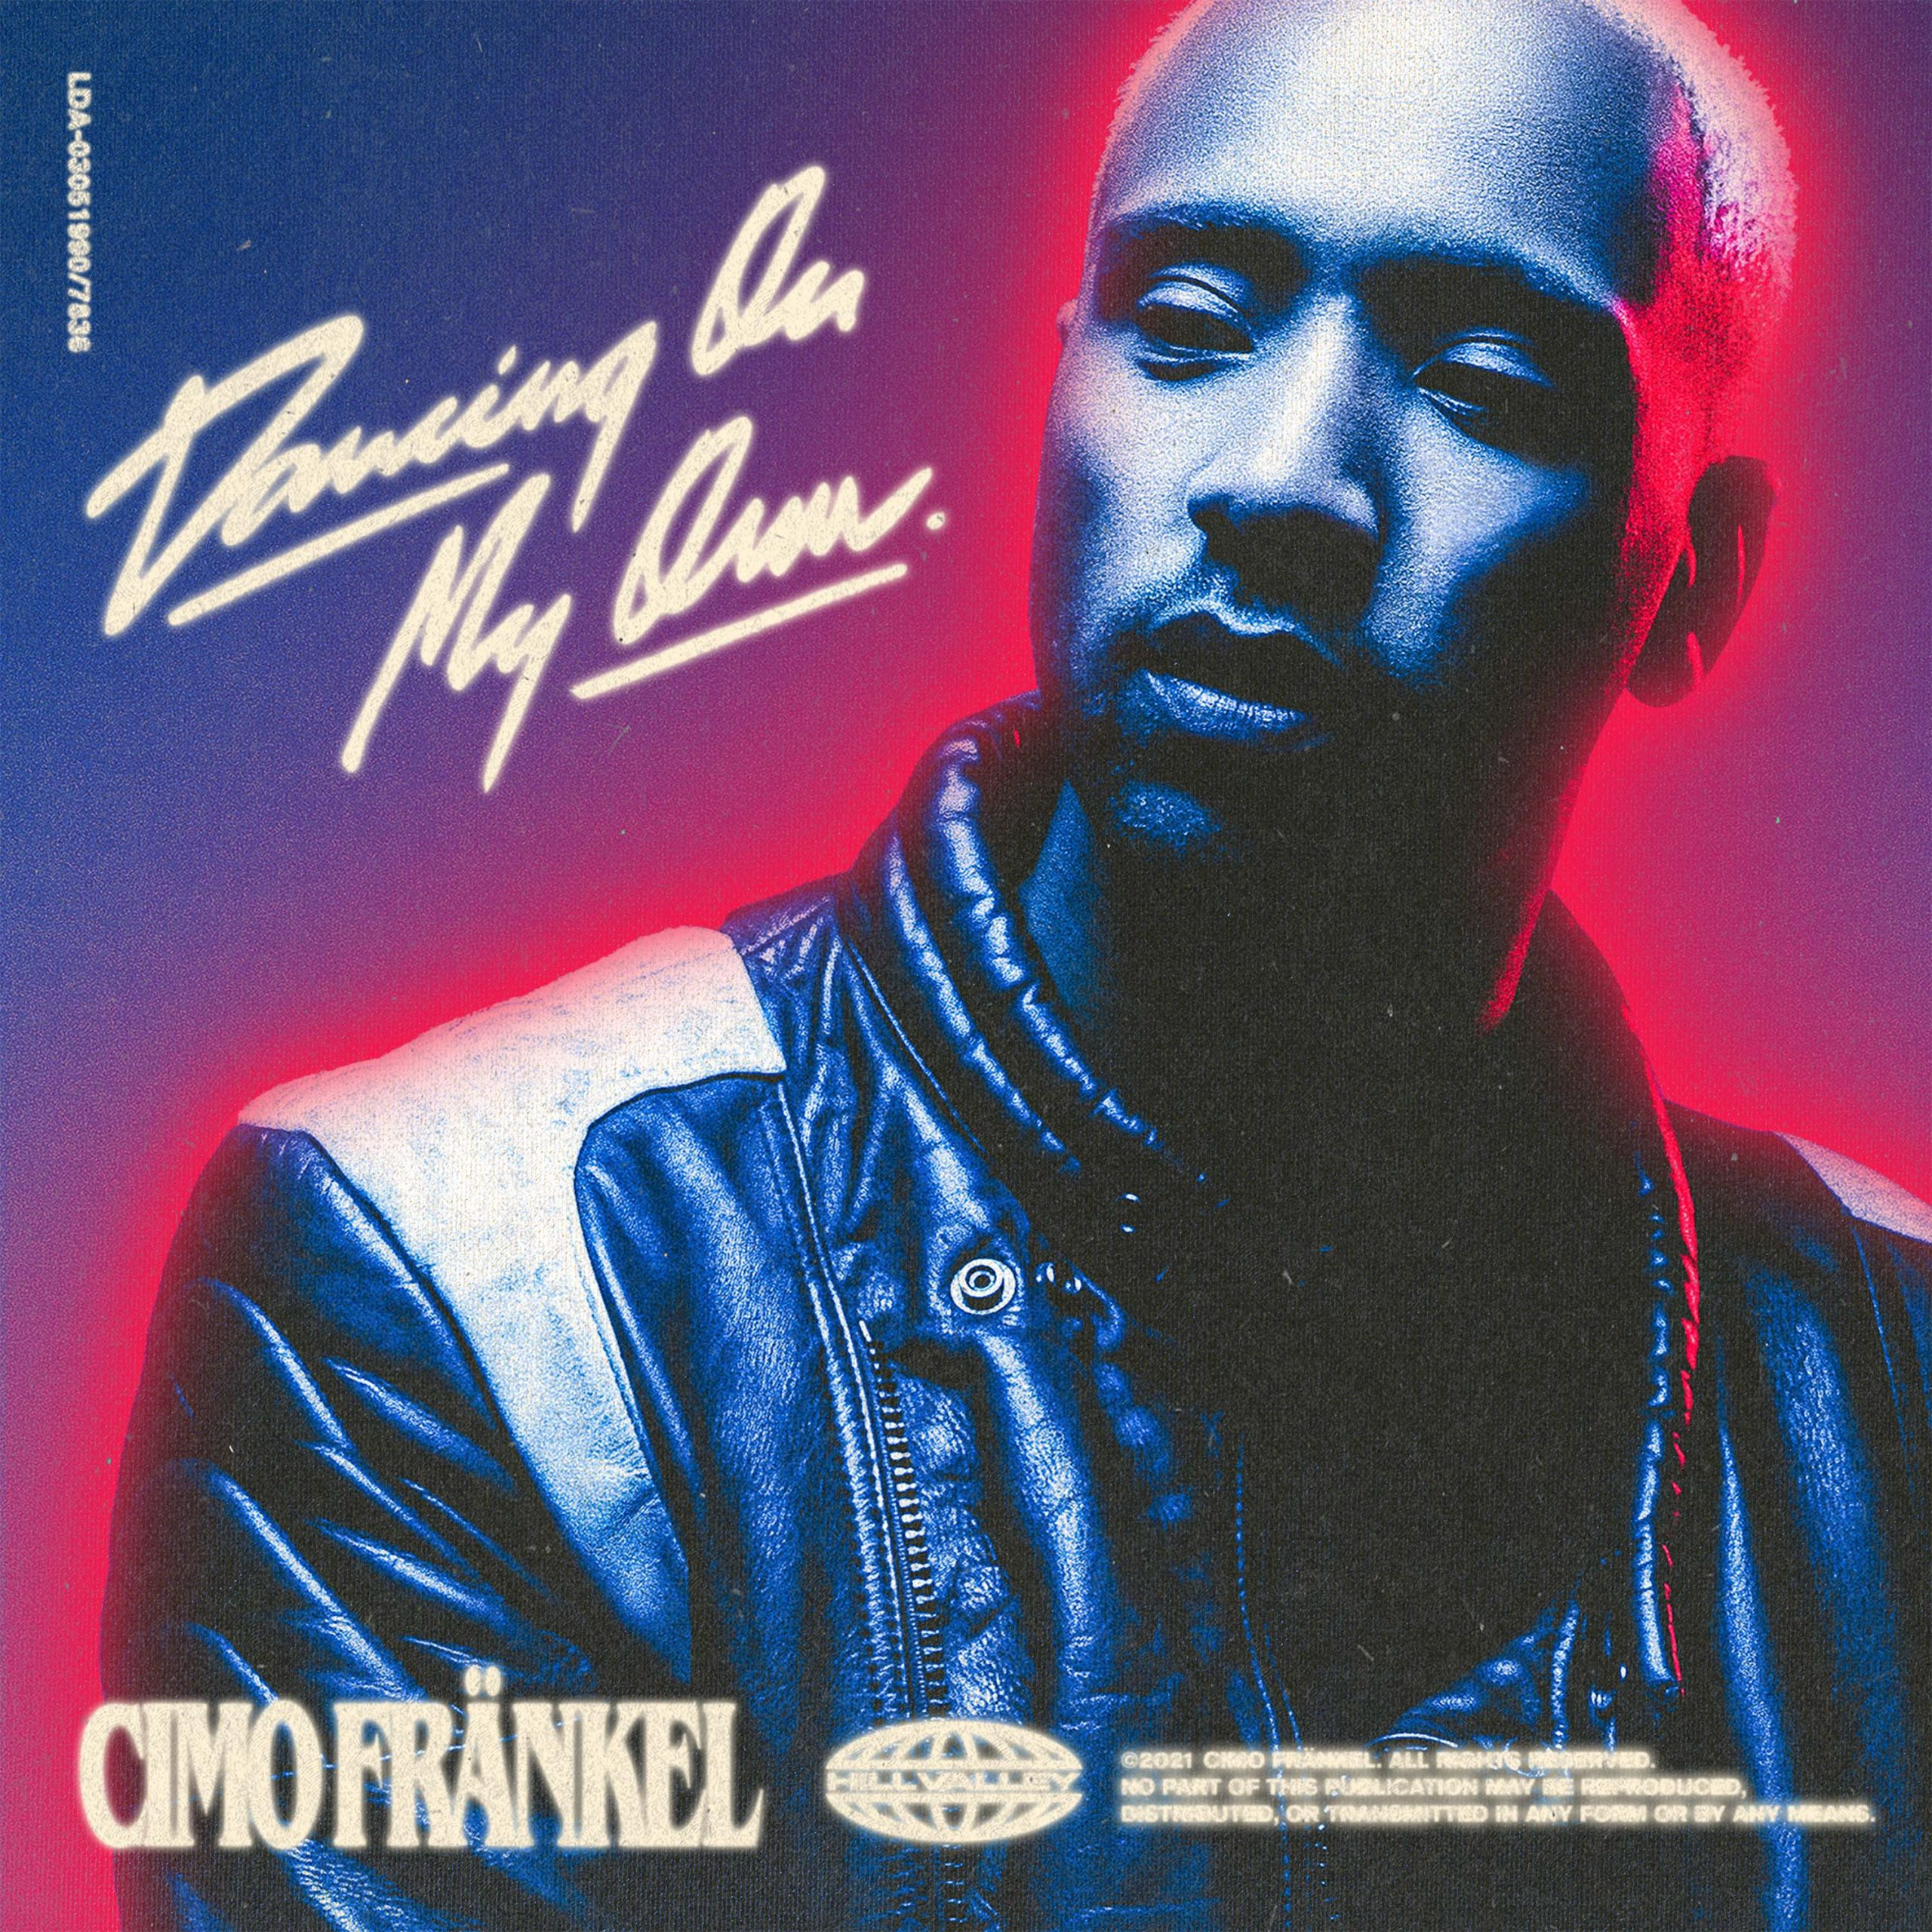 Cimo Frankel - Dancing On My Own